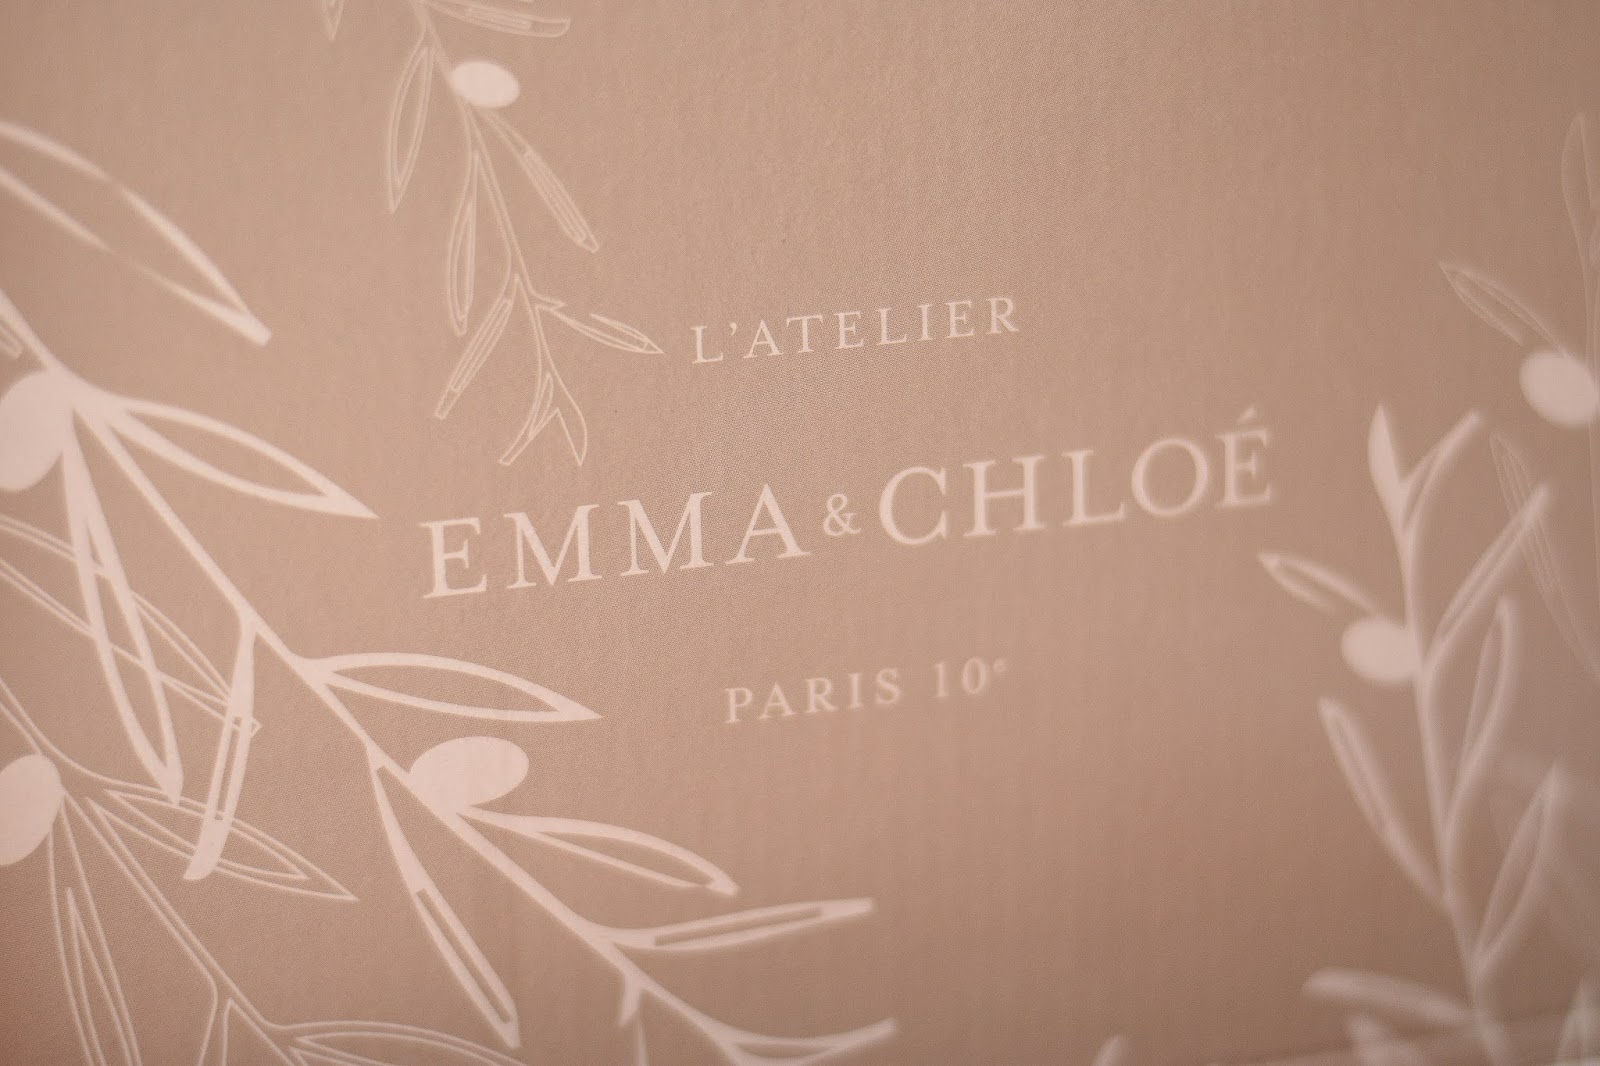 PREVIEW_BOX_EMMA_&_CHLOE_JUILLET_2020